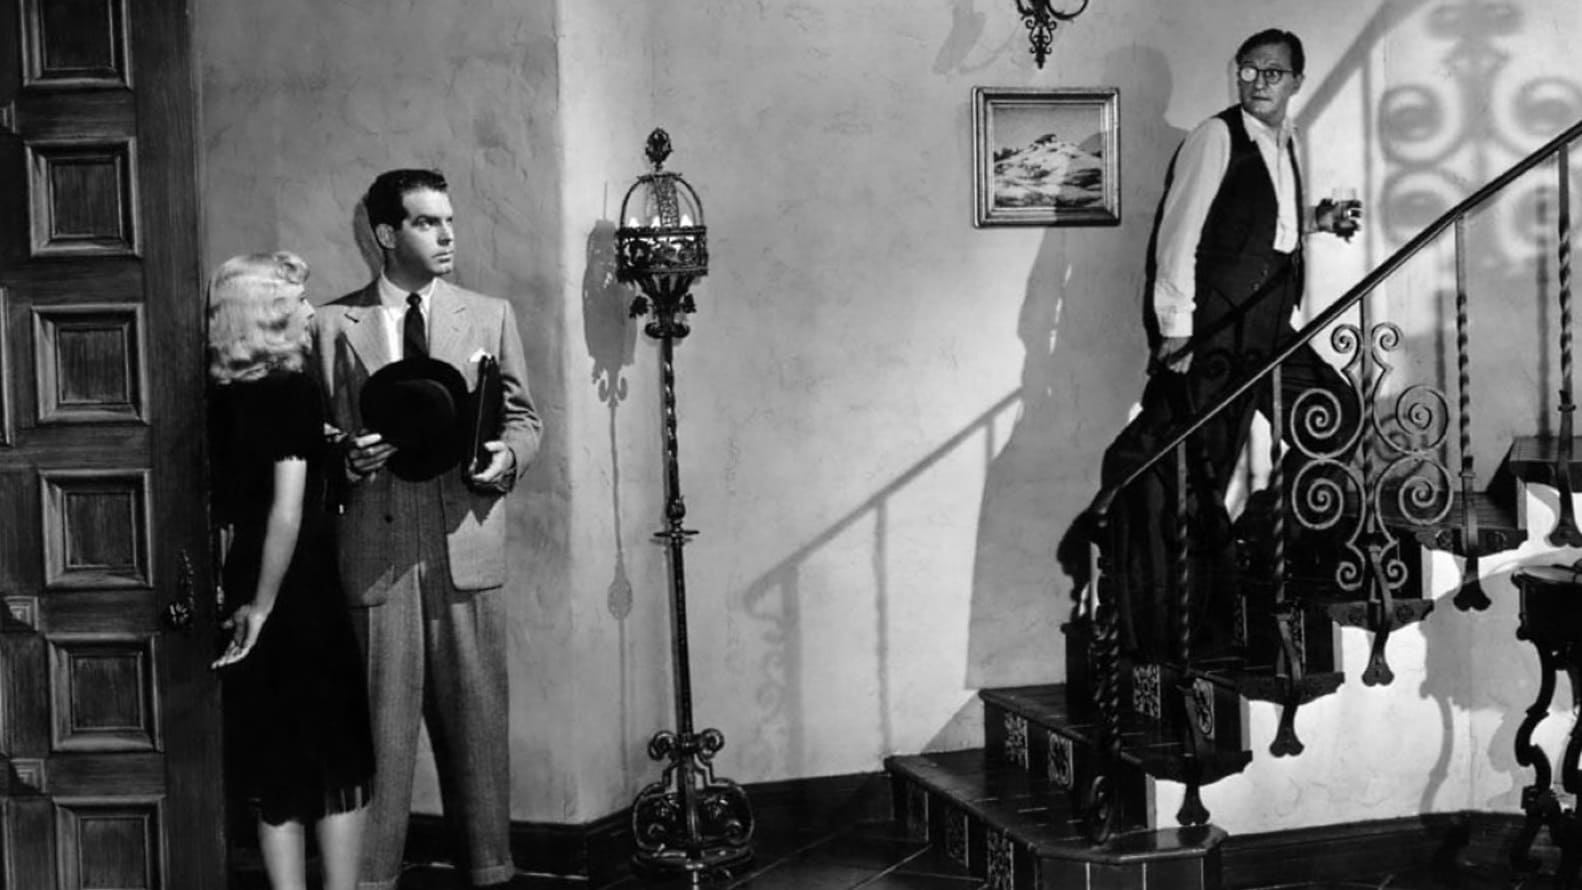 review of double indemnity Fred macmurray's sharp-as-a-knife voiceover, which barely lets up from start to finish, is an unremitting delight in the classic double indemnity.